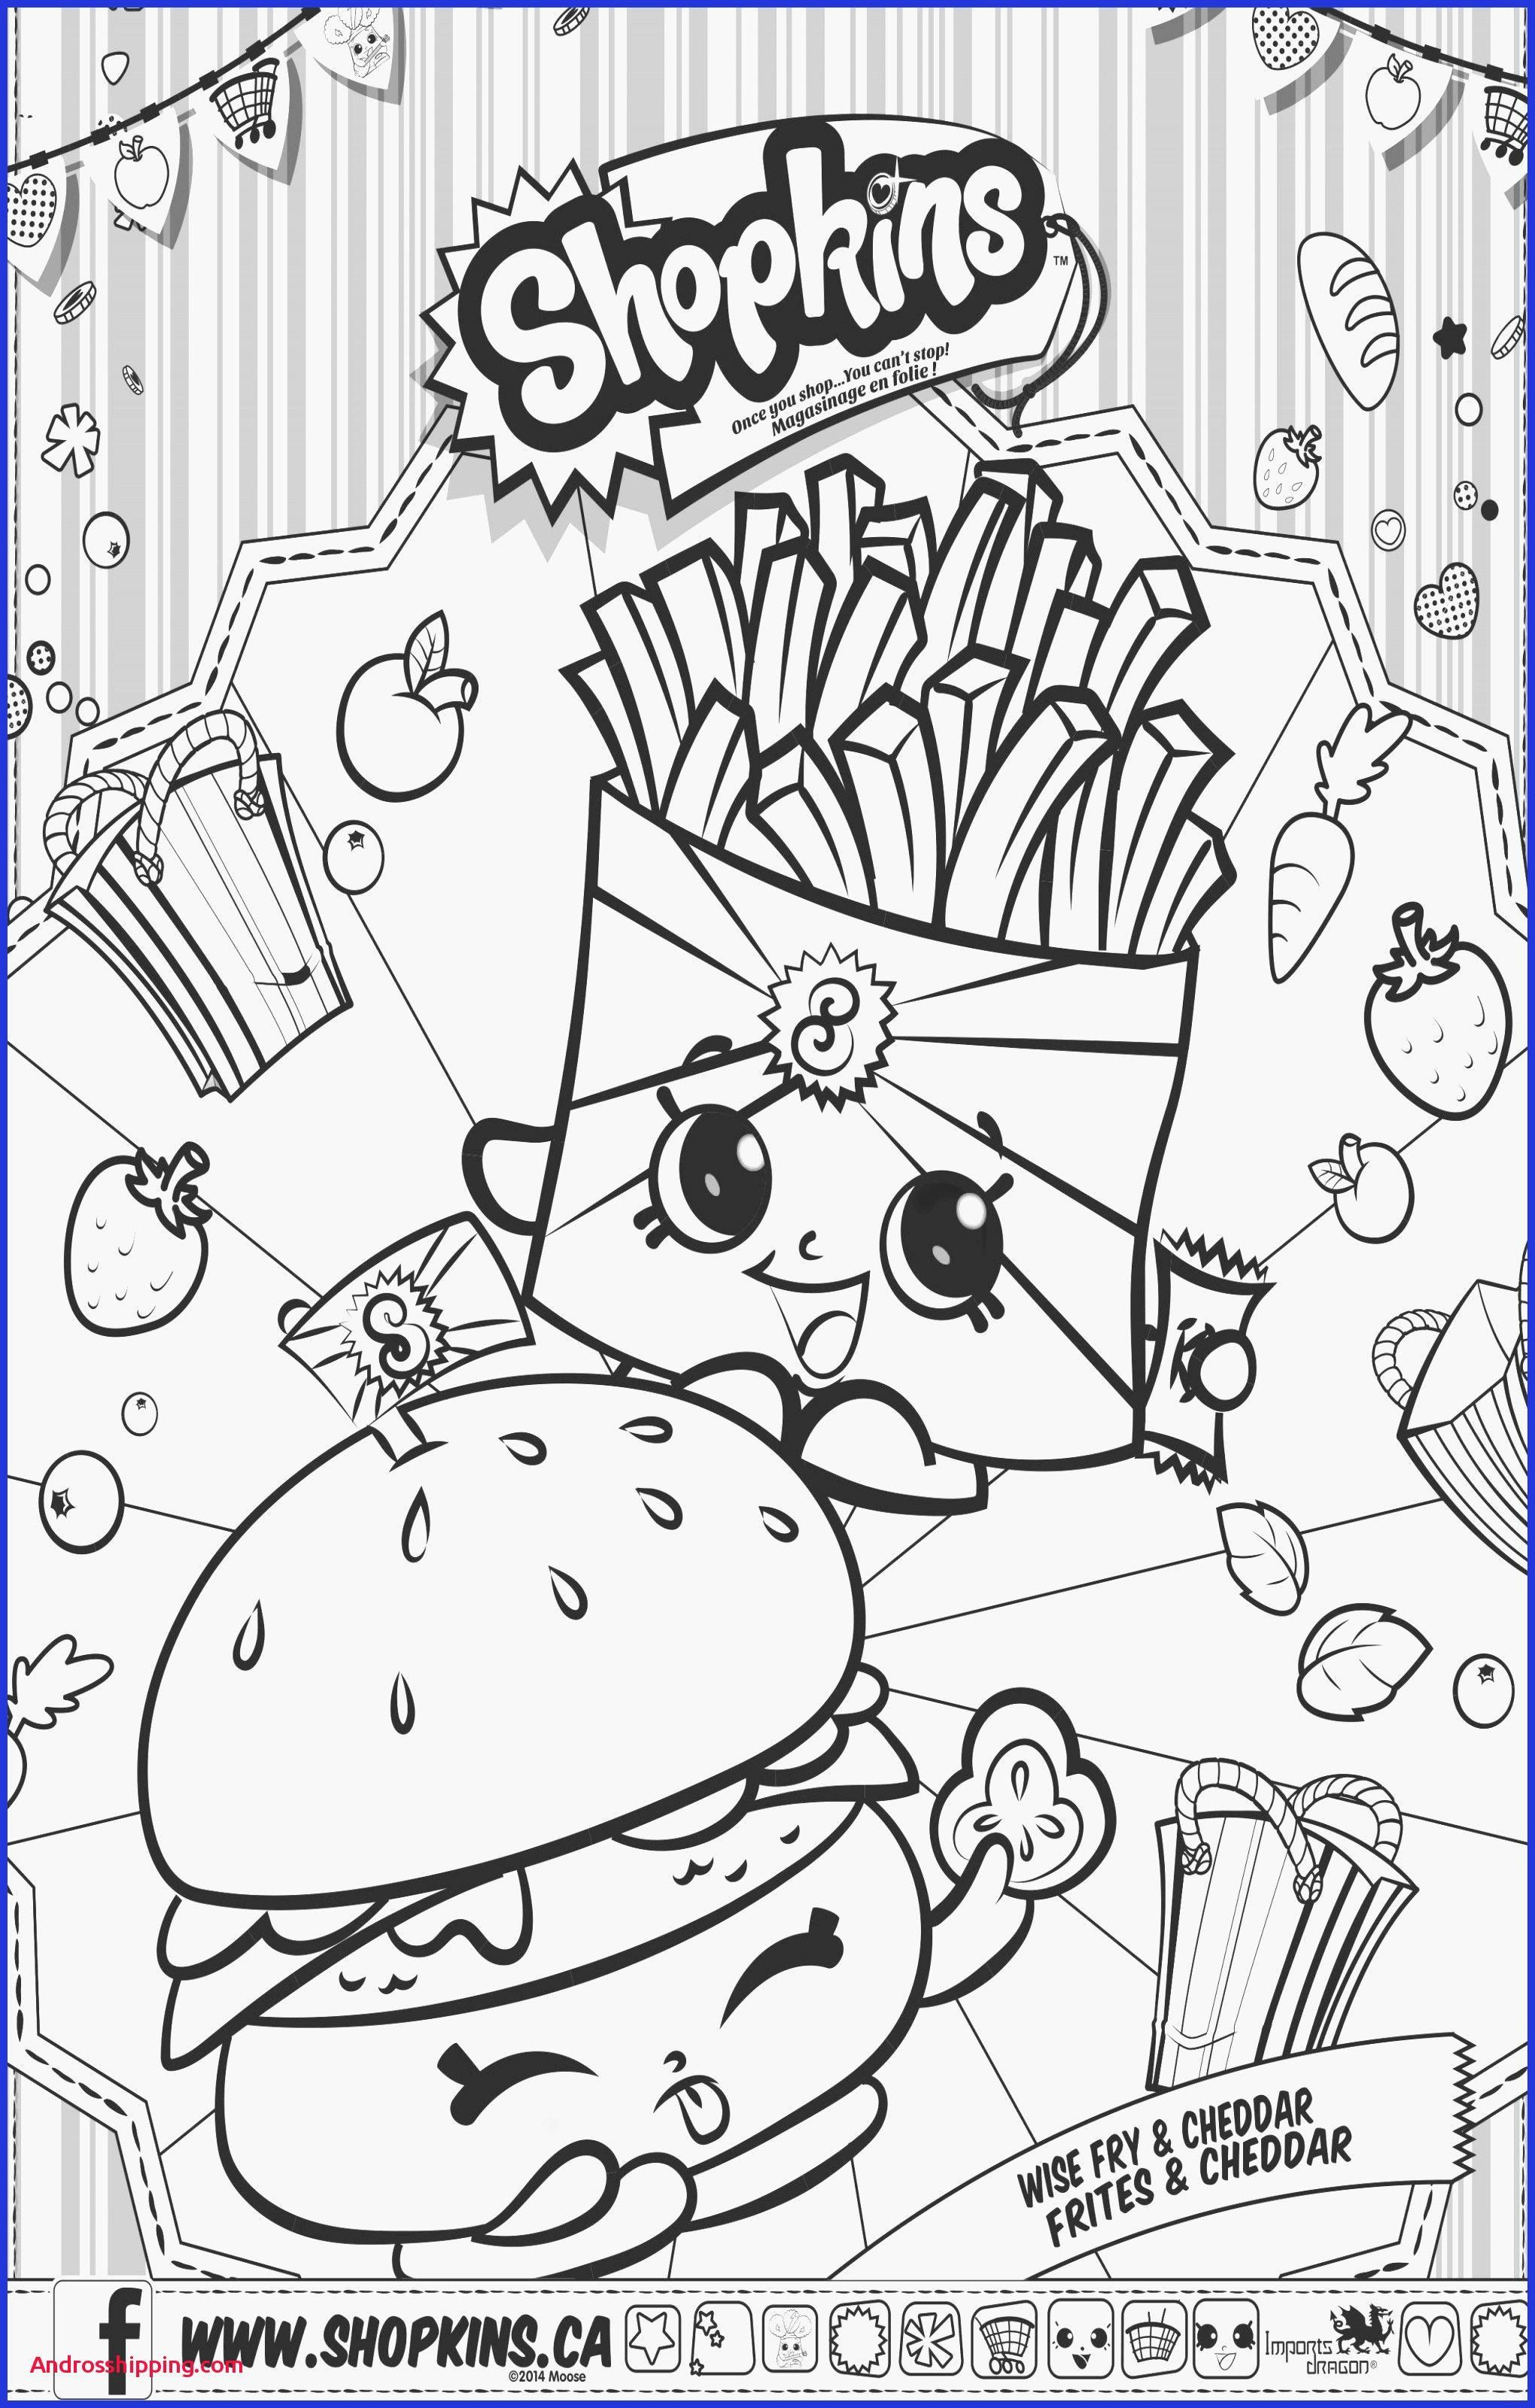 Coloring Sheets For Middle Schoolers Beautiful Best Coloring Pages For Kids Shopkins Valentine Coloring Pages Shopkins Colouring Pages Shopkin Coloring Pages